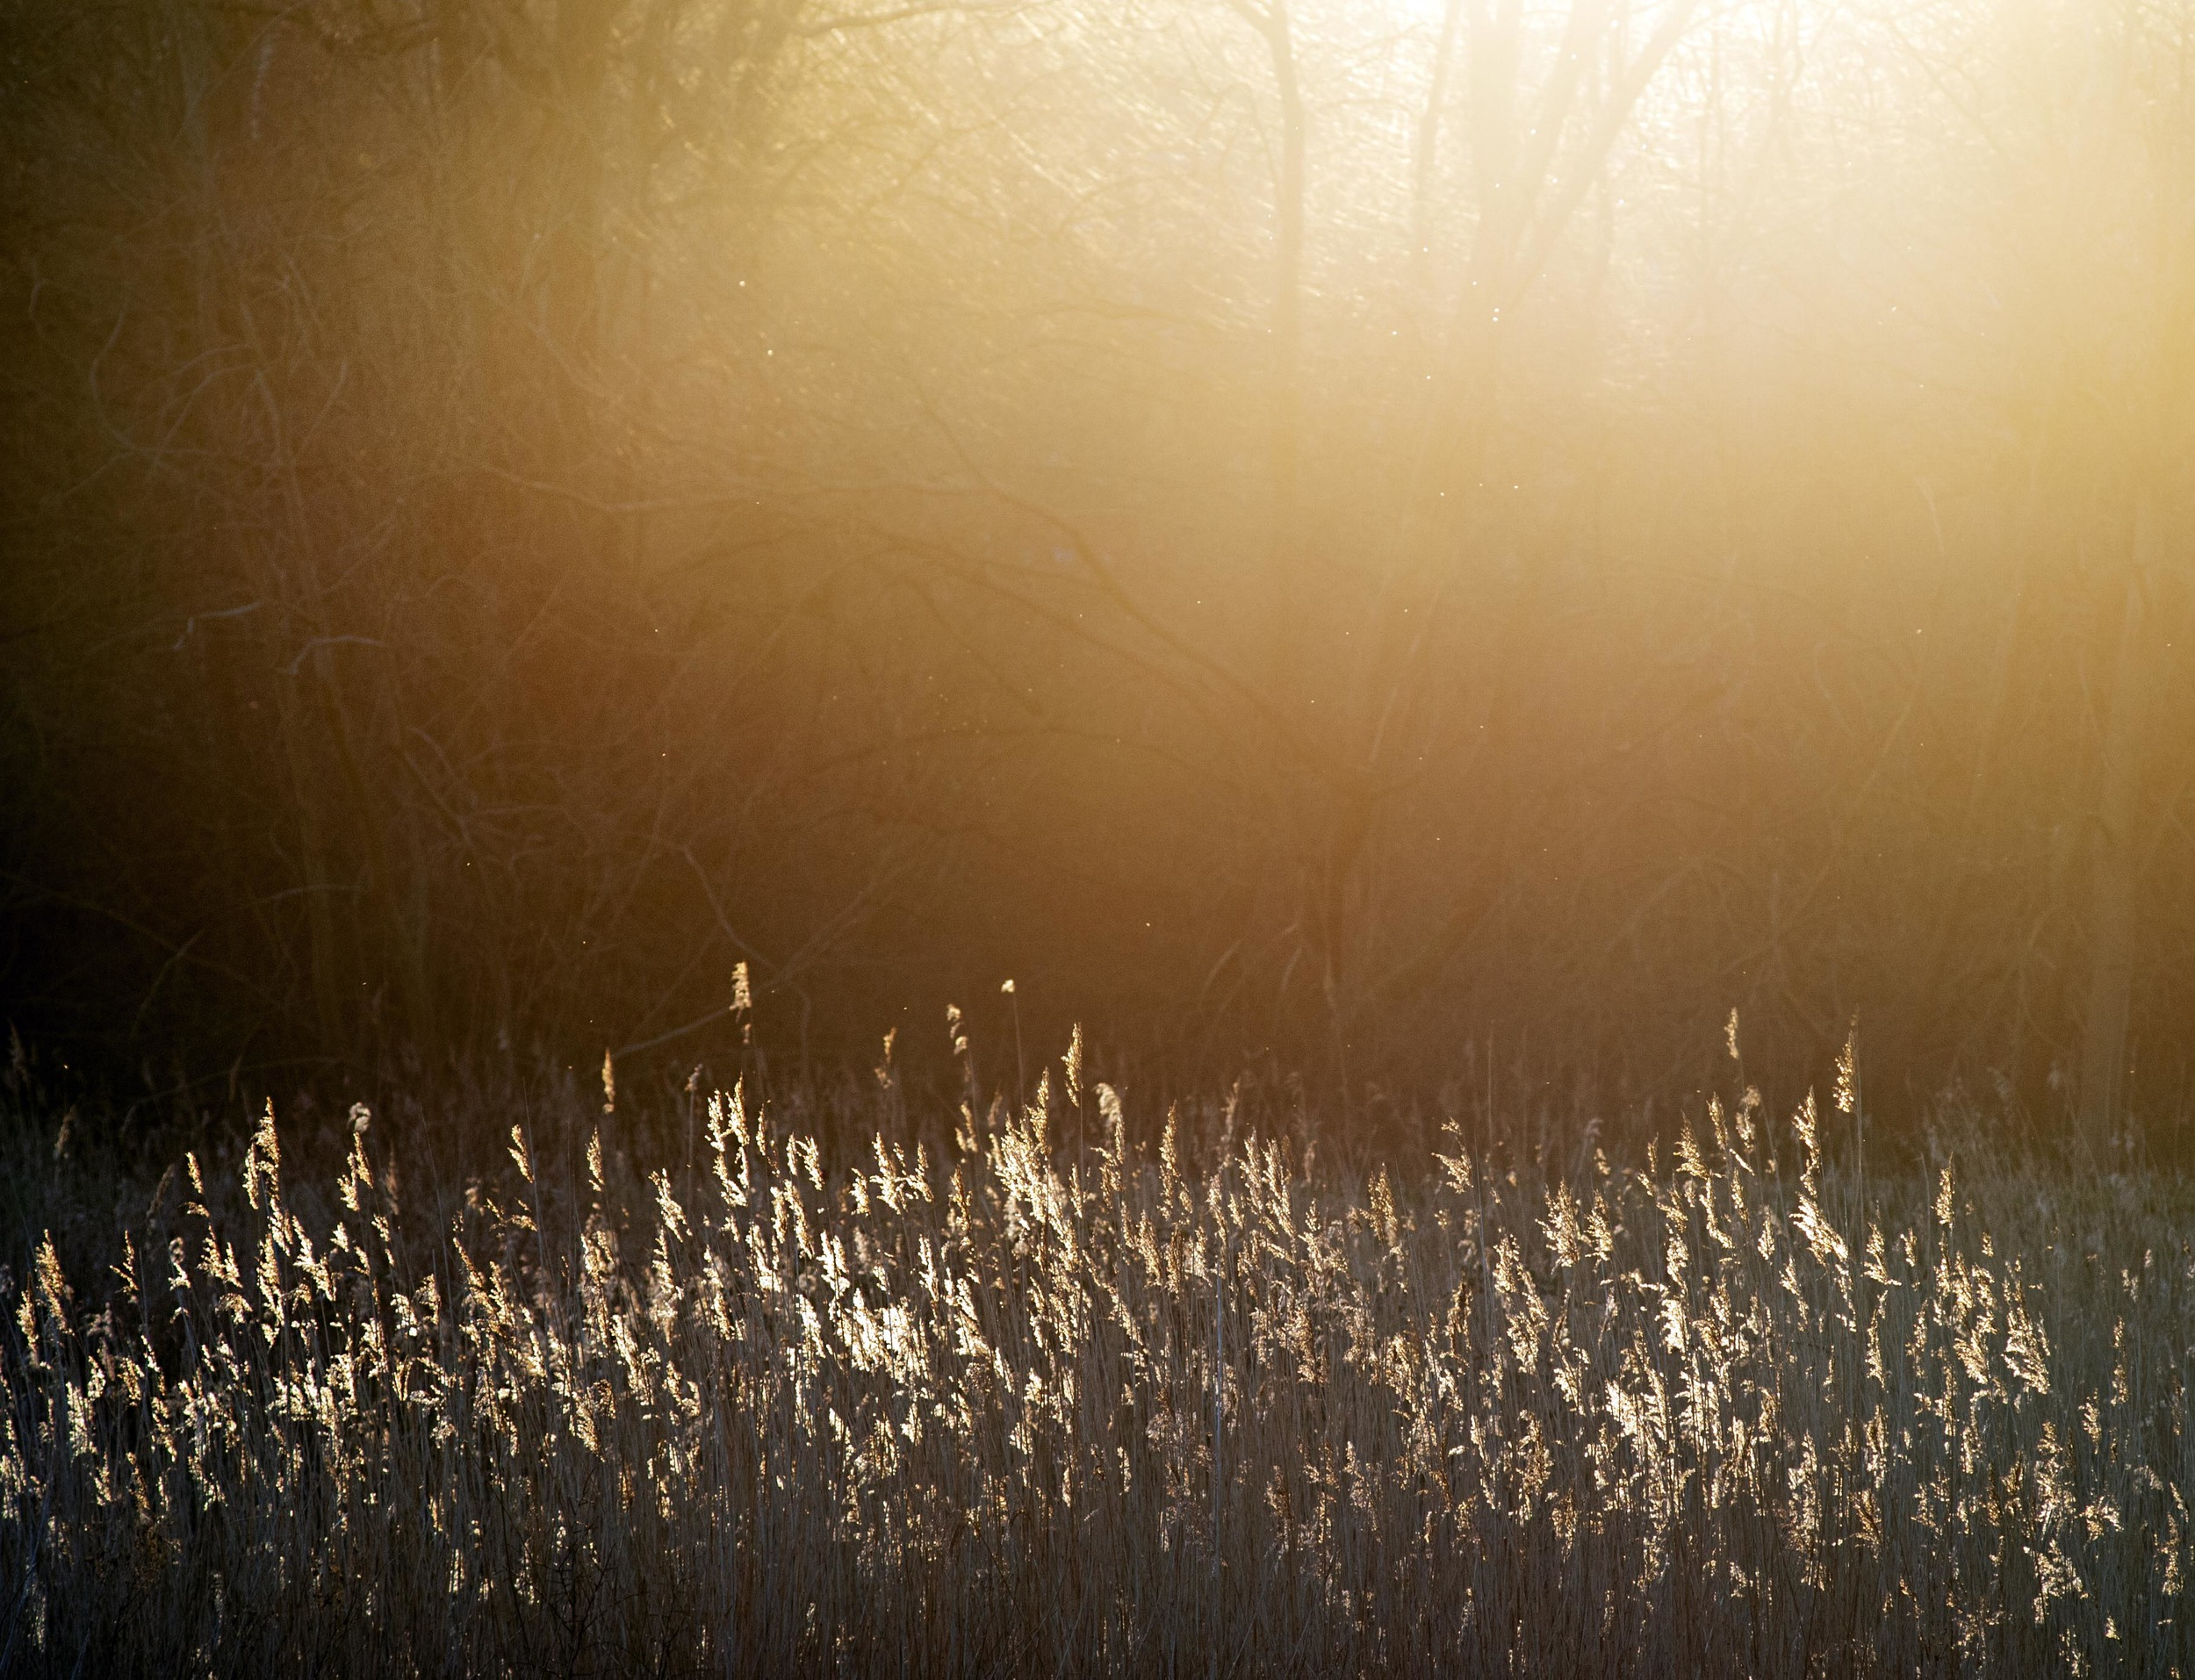 Sun coming through trees in heart of reeds for web.jpg